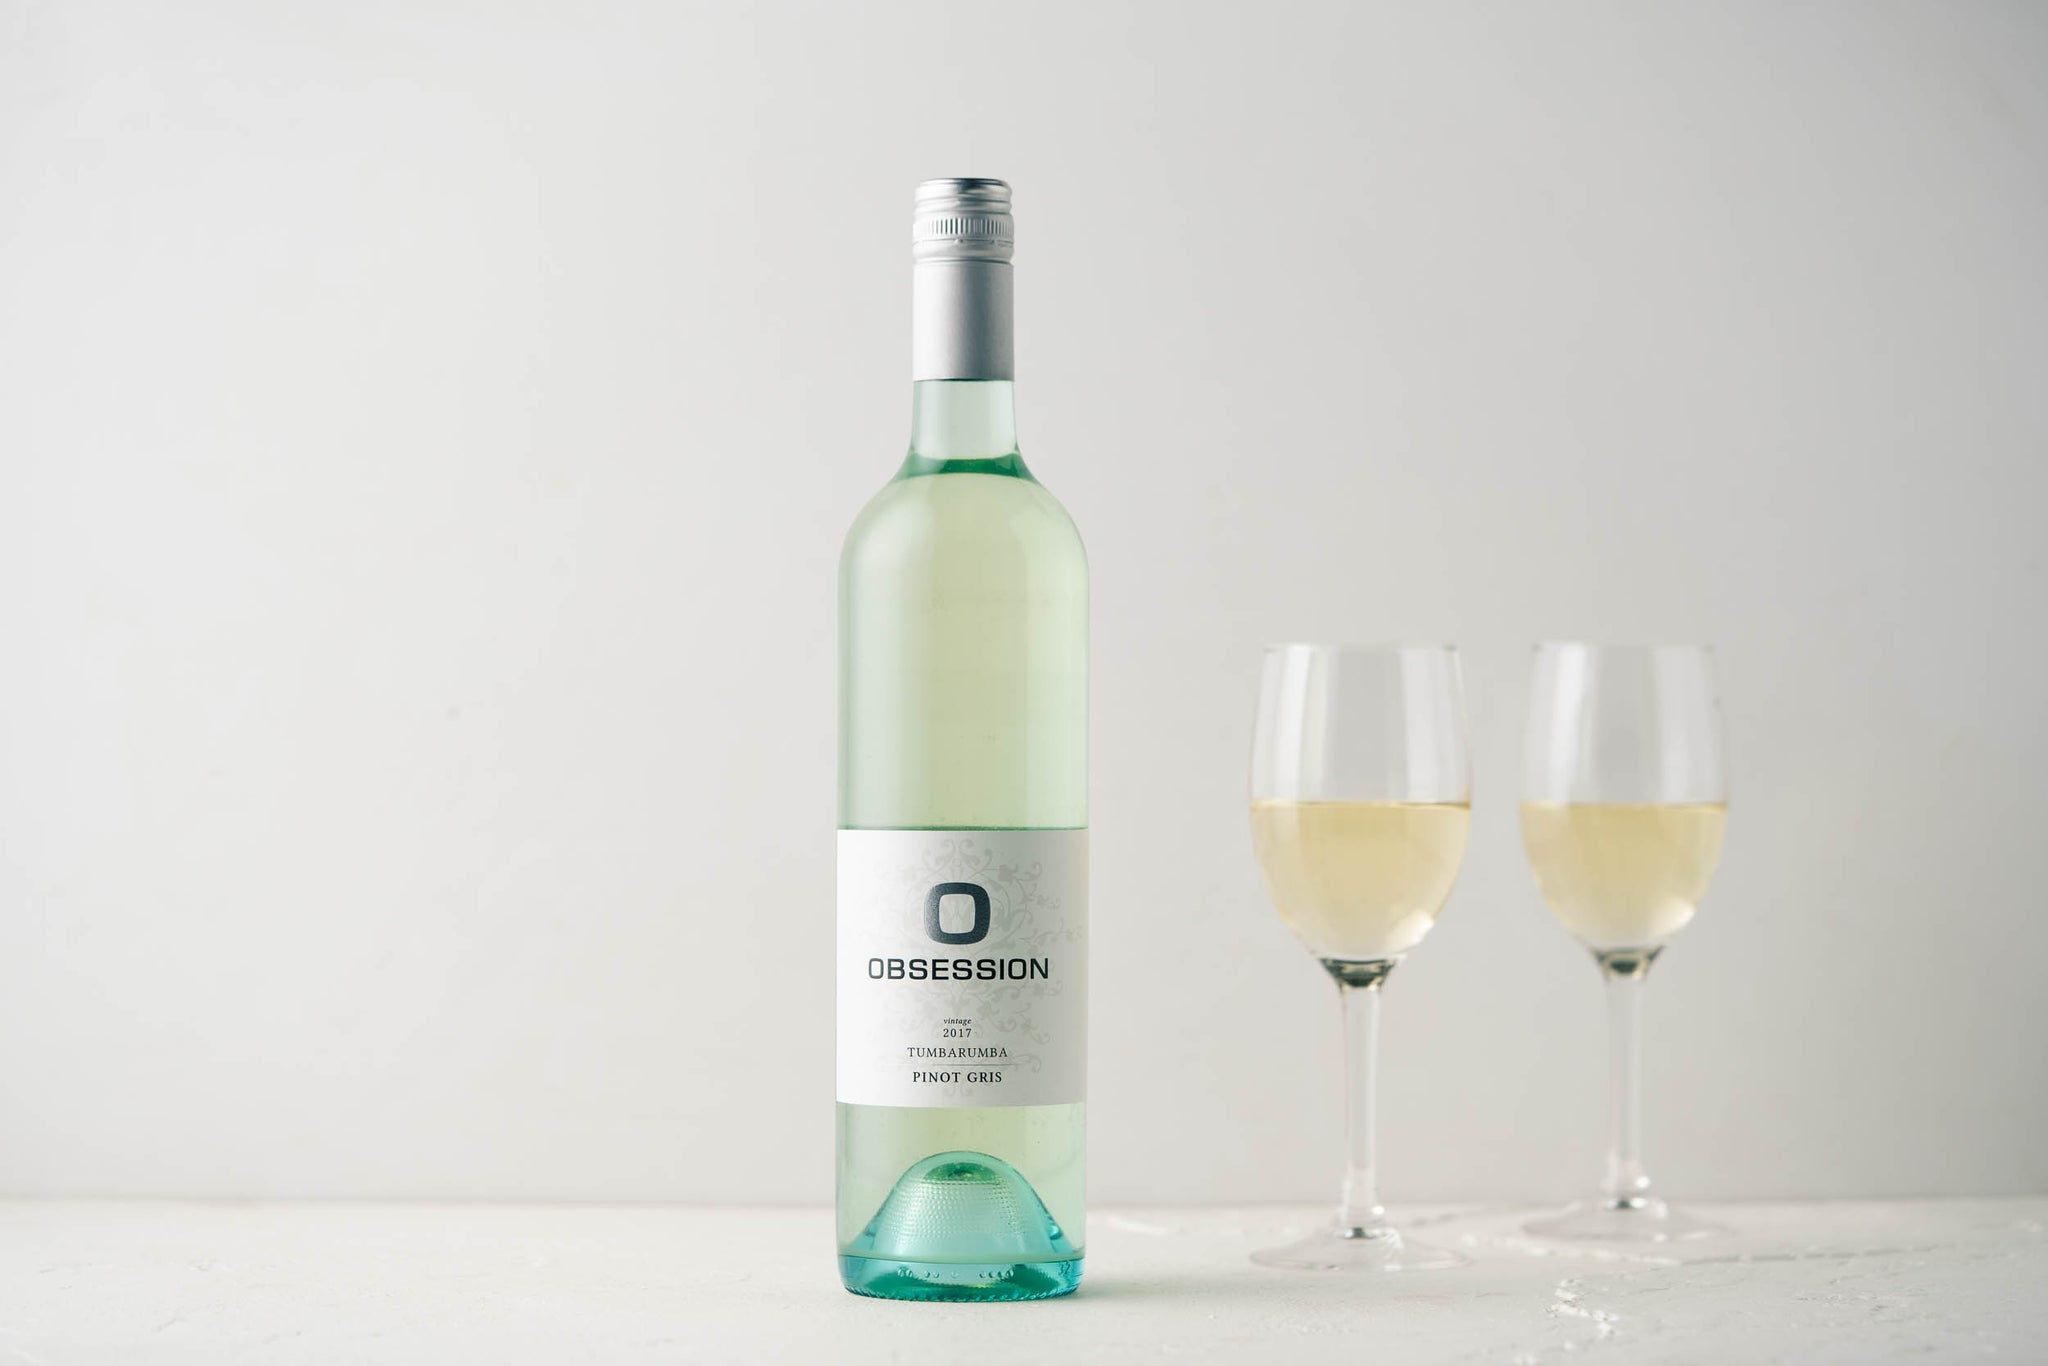 Obsession Pinot Gris